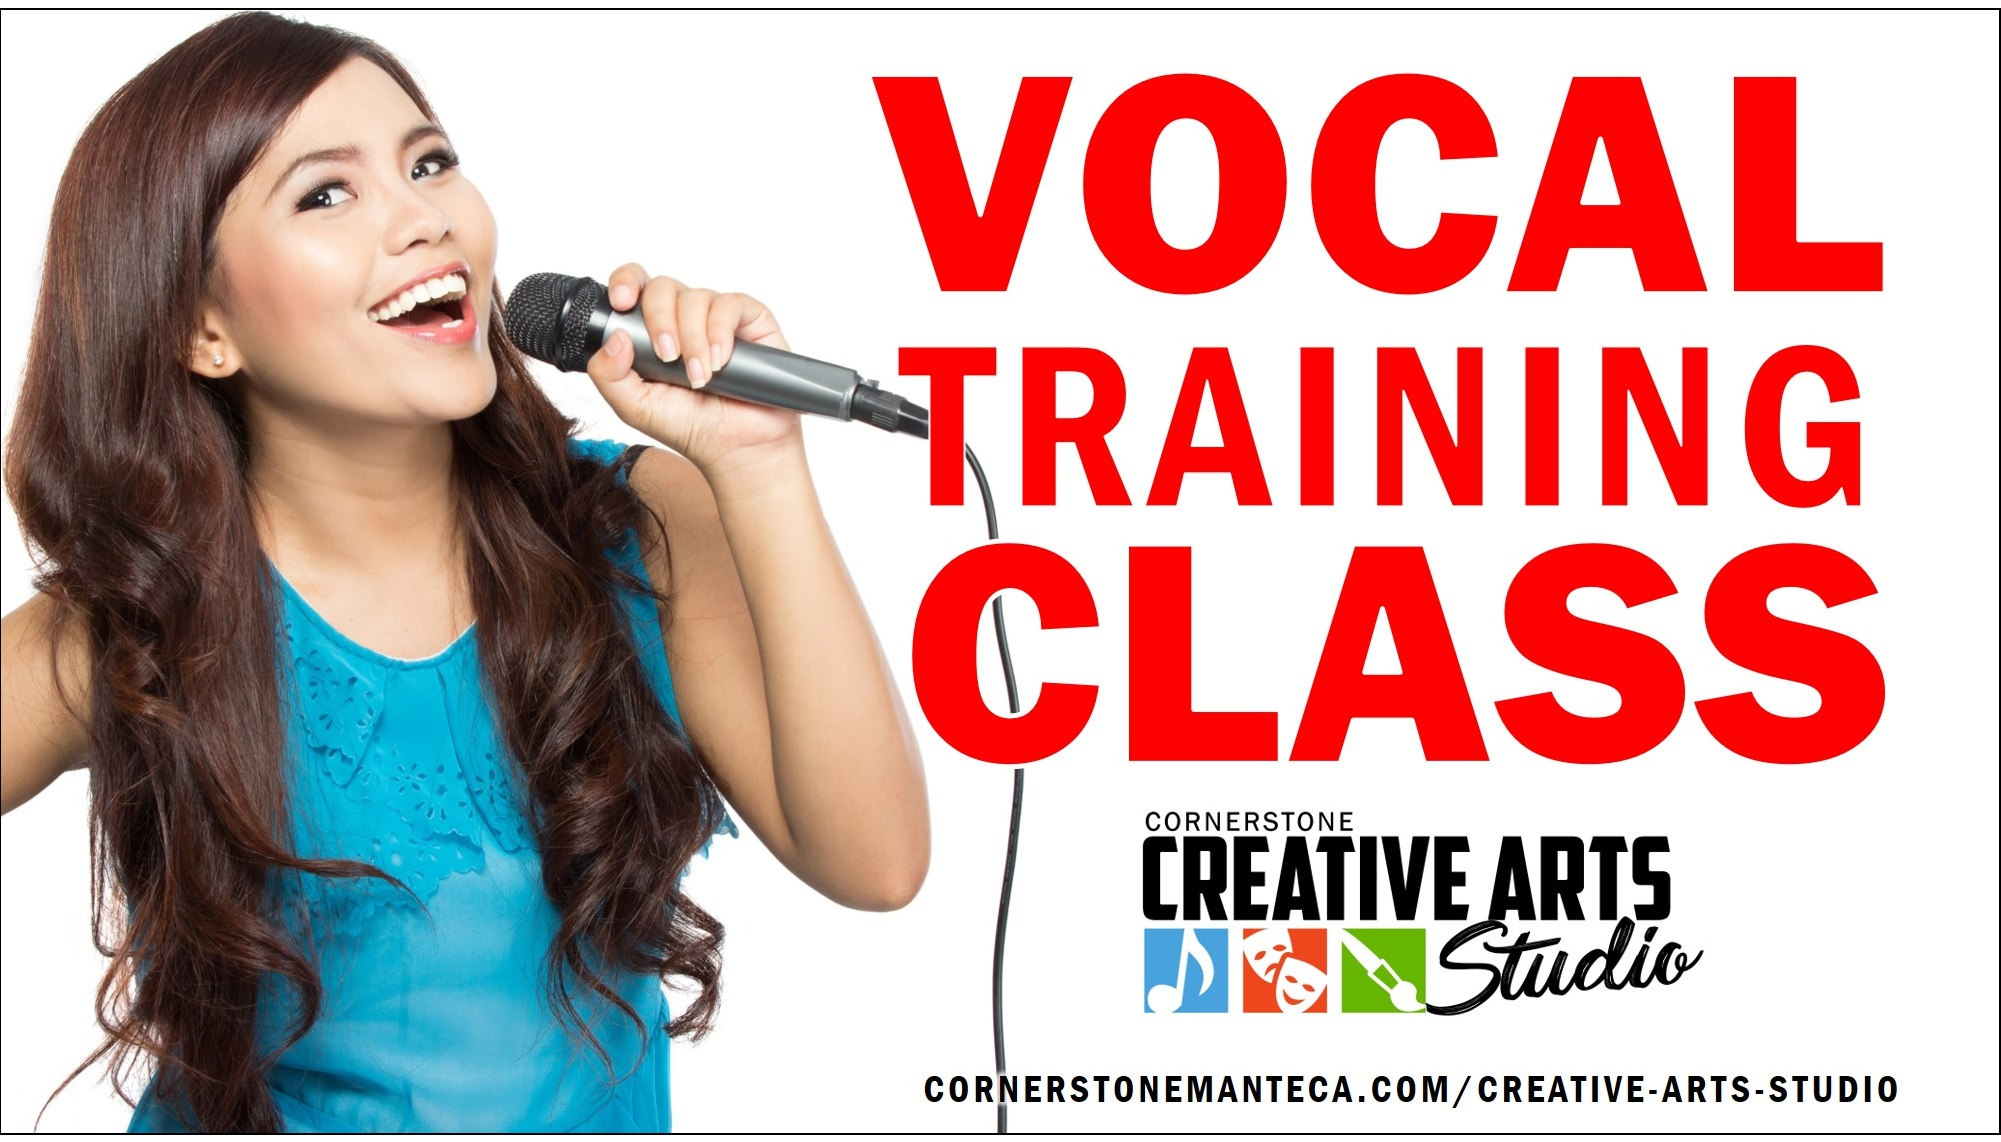 Vocal Training Class.jpg